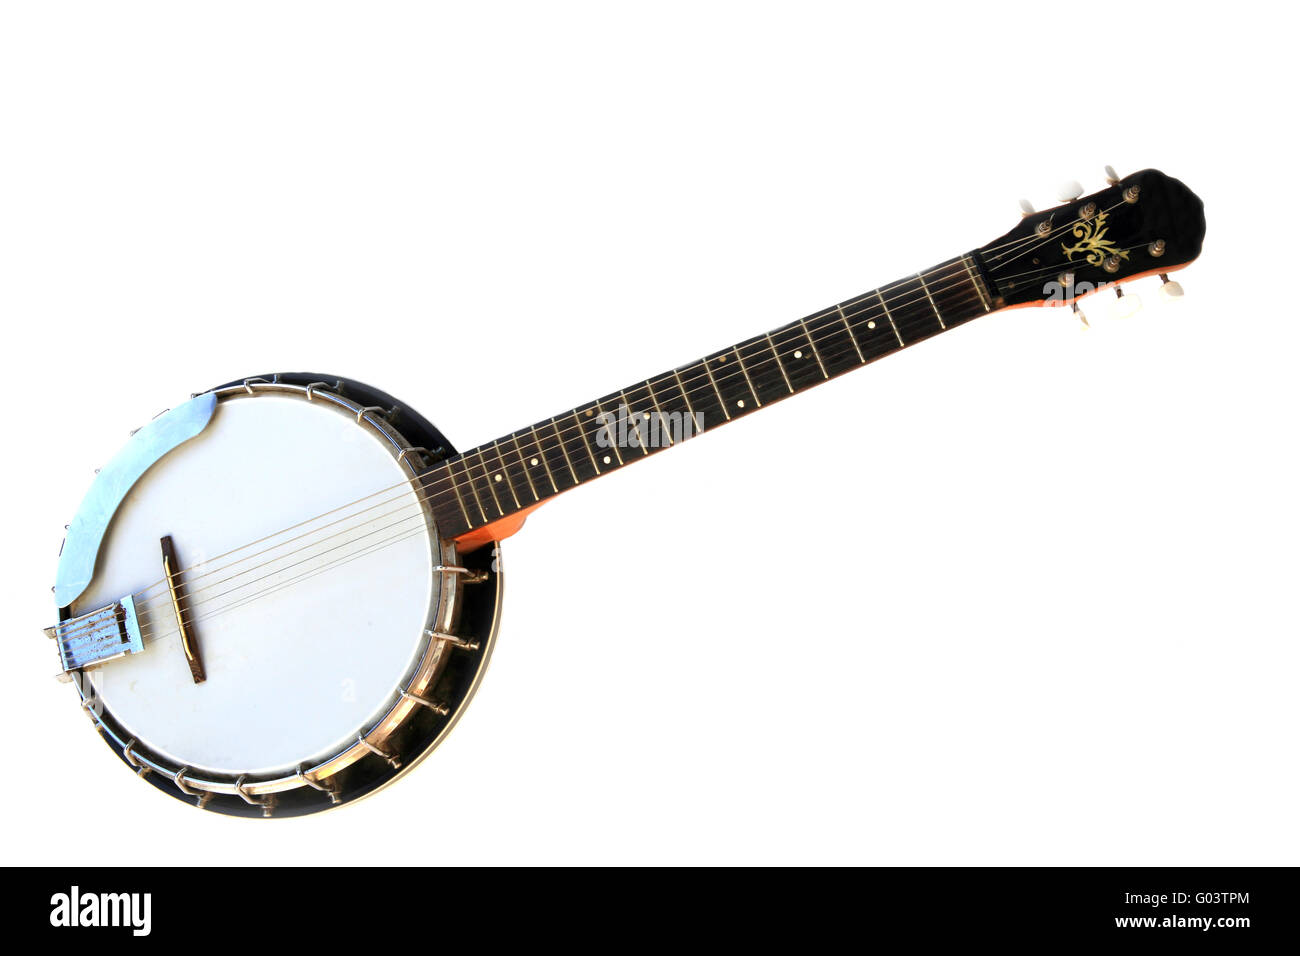 Musical instrument banjo isolated on a white background. - Stock Image